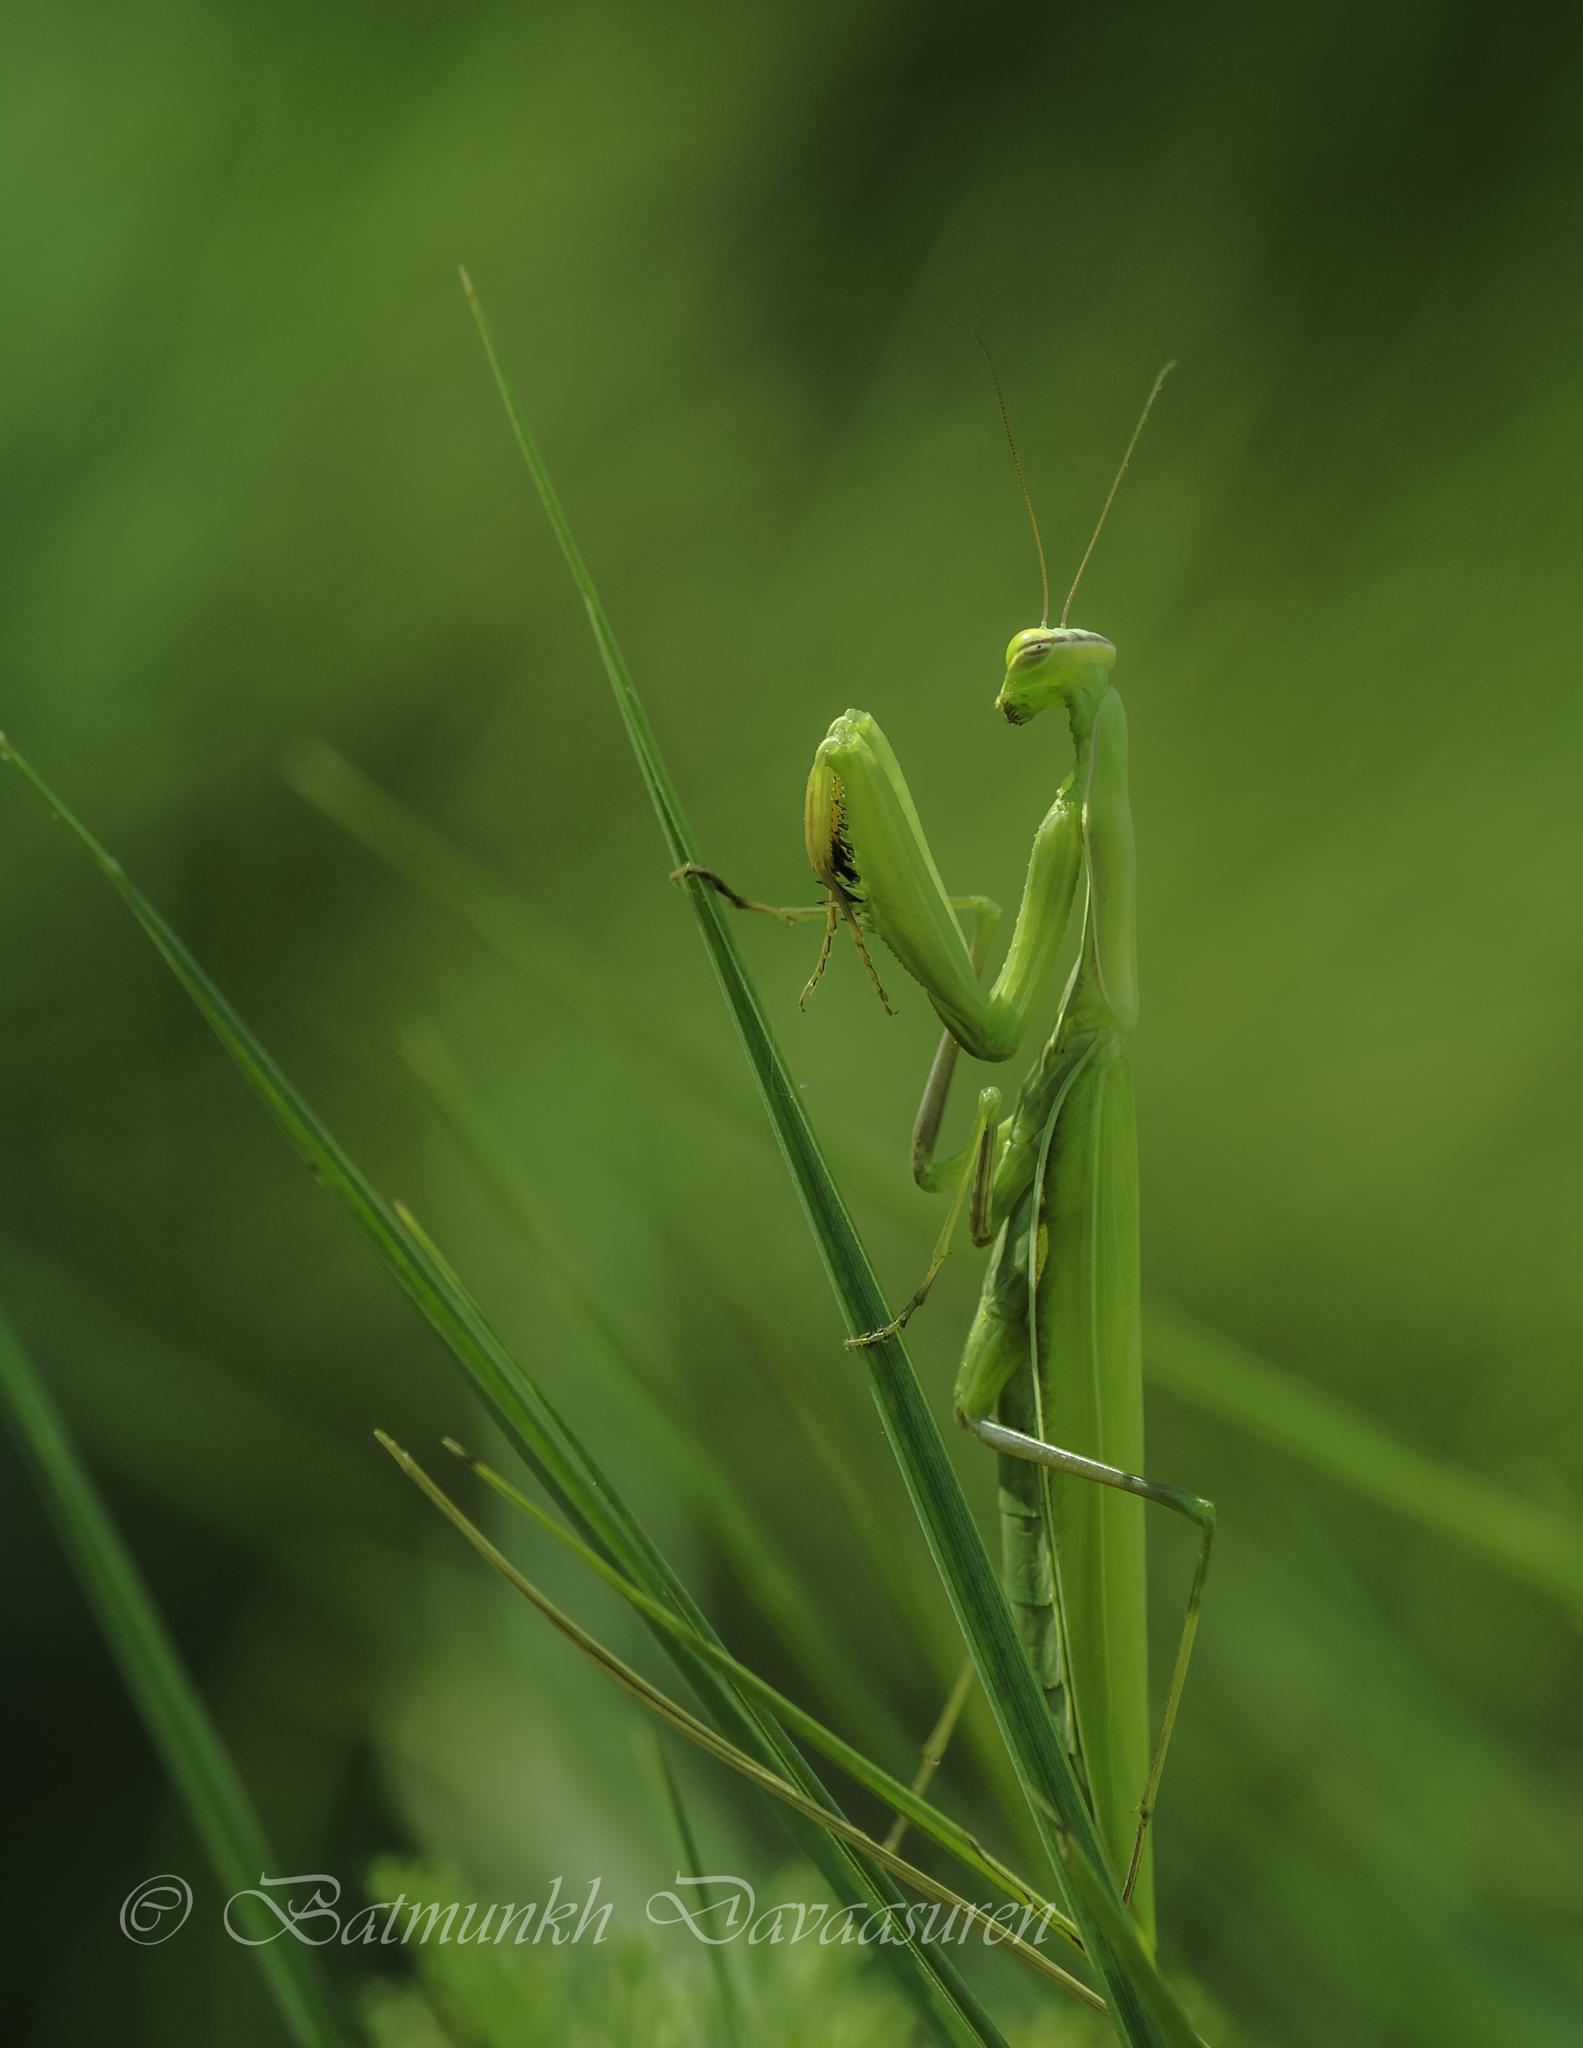 Praying mantis by batmunkhdavaasuren